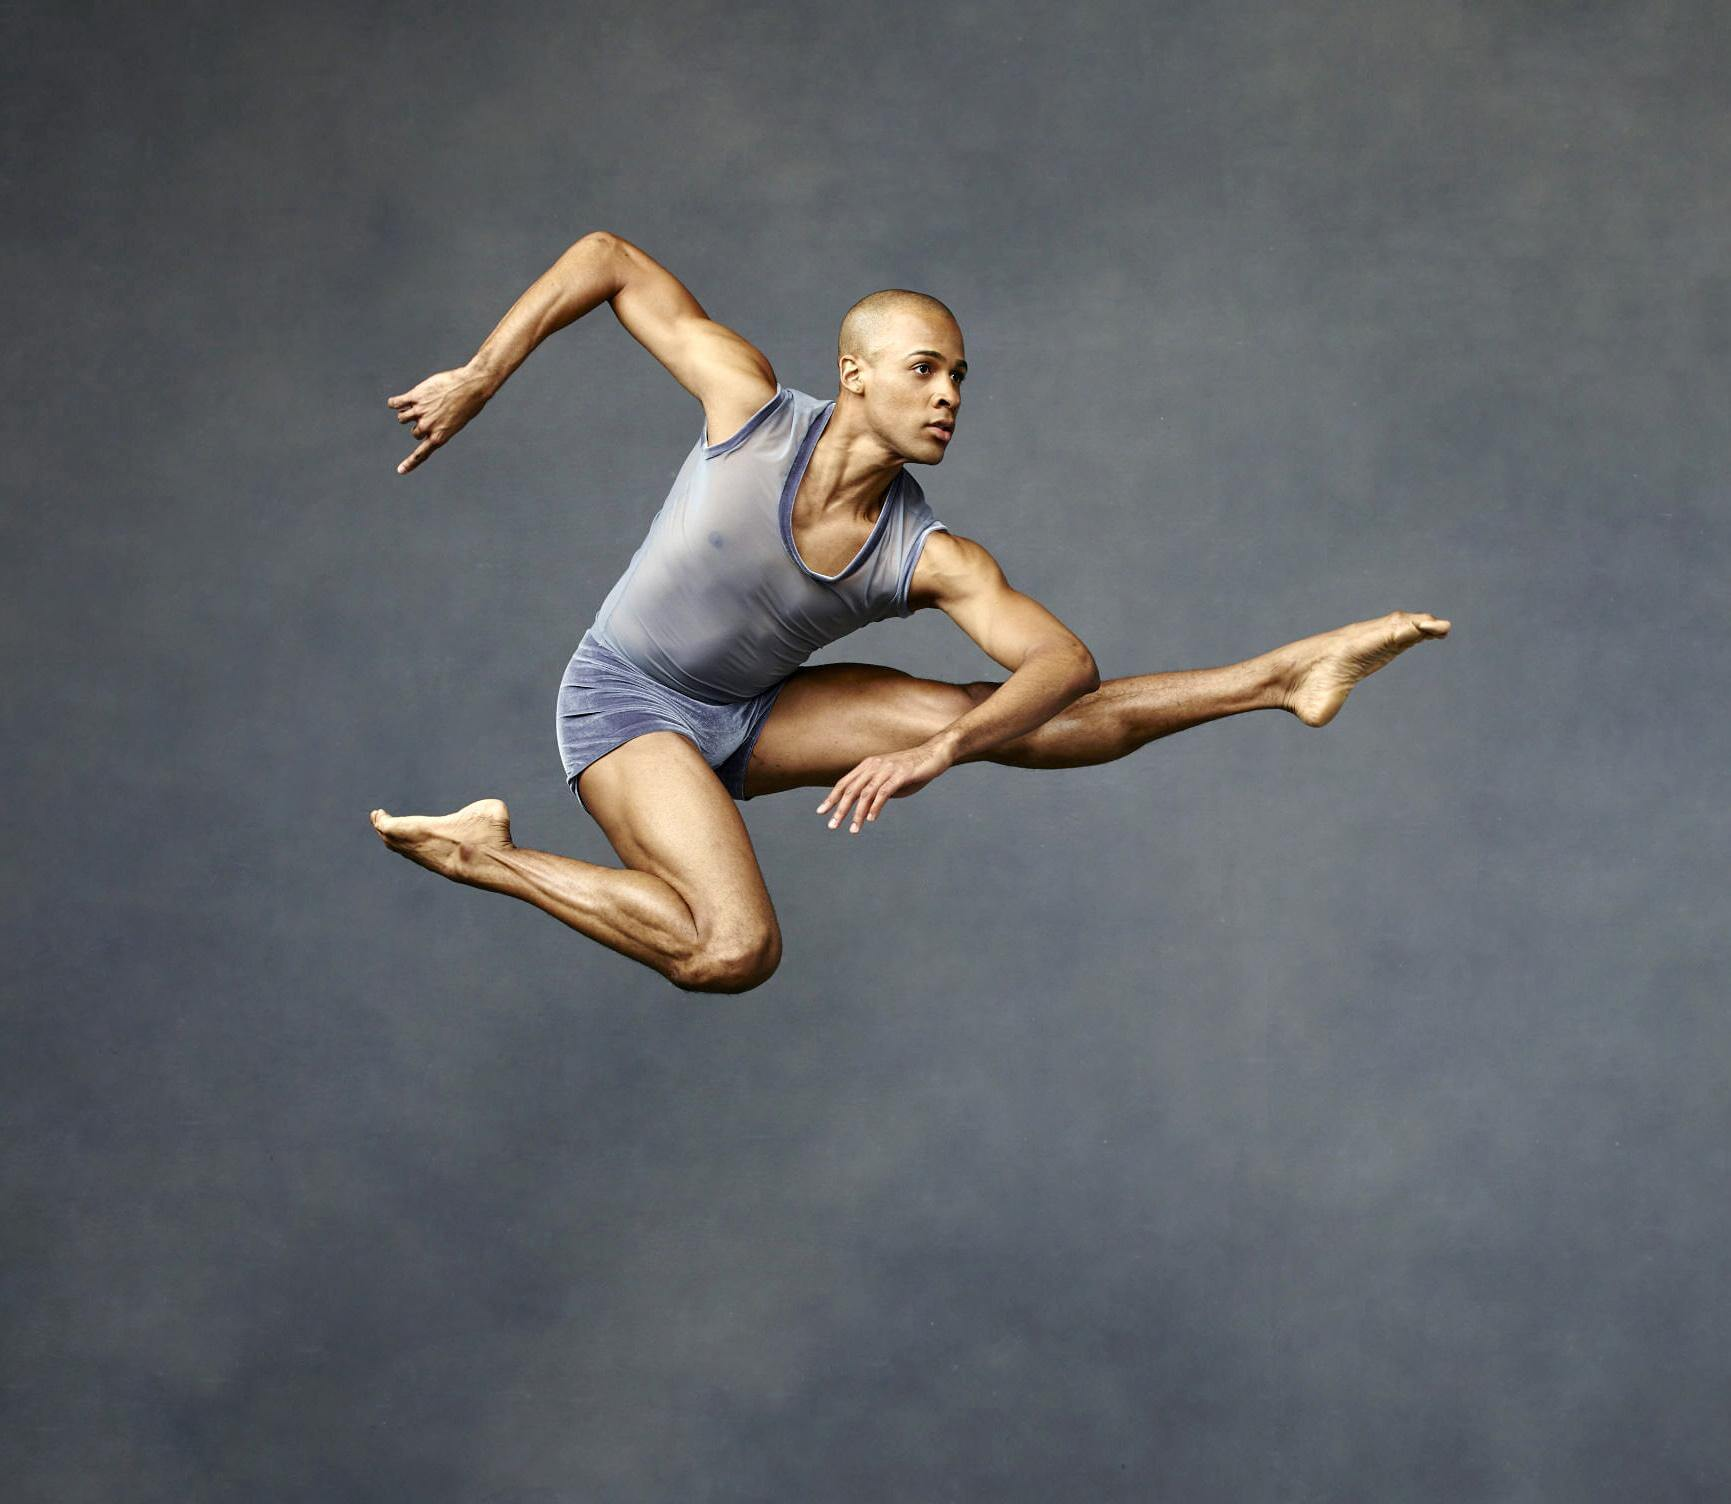 Yannick Lebrun, photo by Andrew Eccles